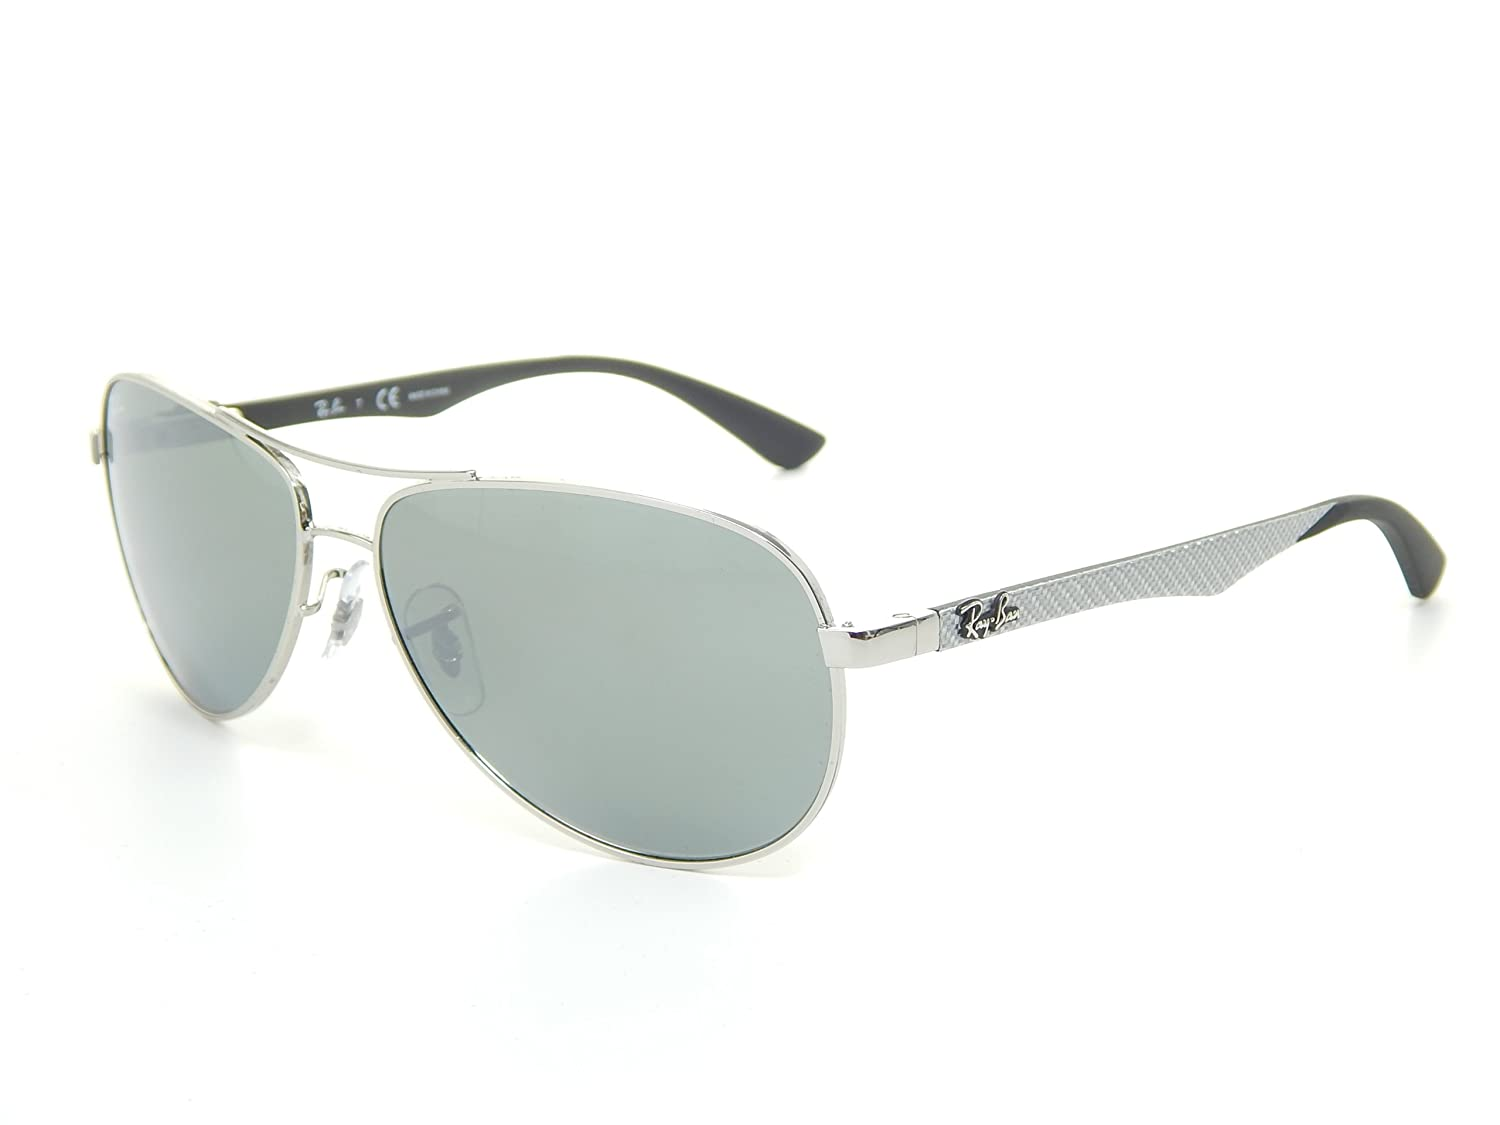 6beb50f4e4d New Ray Ban Tech RB8313 003 40 Silver Grey Mirror Lens 58mm Sunglasss   Amazon.co.uk  Shoes   Bags